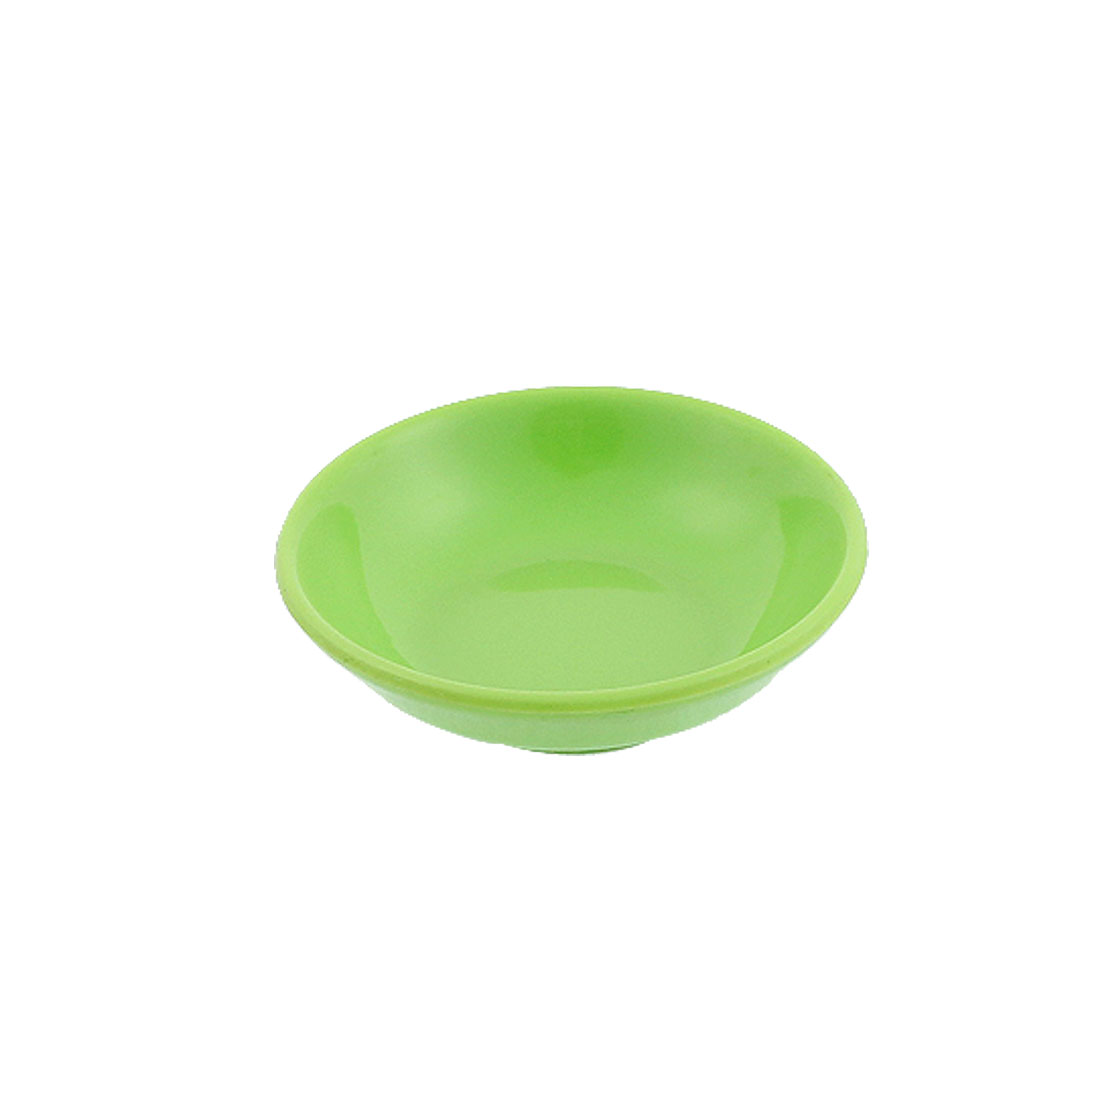 Round Shape Soy Sauce Dipping Sushi Mini Dish Plate Green